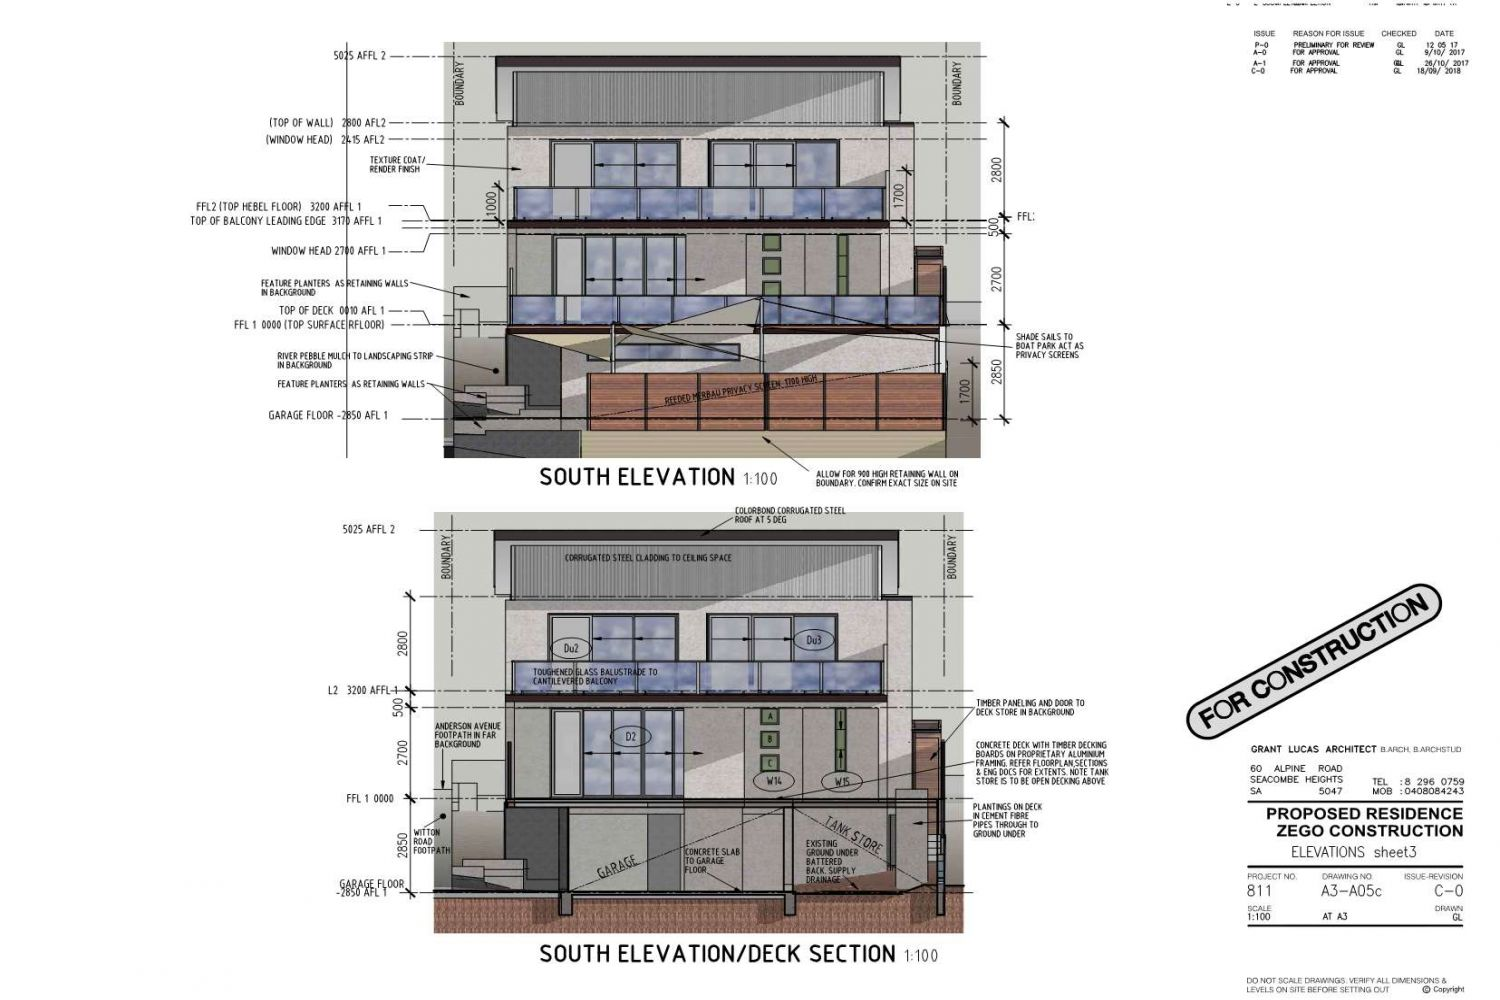 Owner Builder Zego Construction  2 storey Home at Port Noarlunga: Working Drawings Sheet 11  Elevations sheet 3